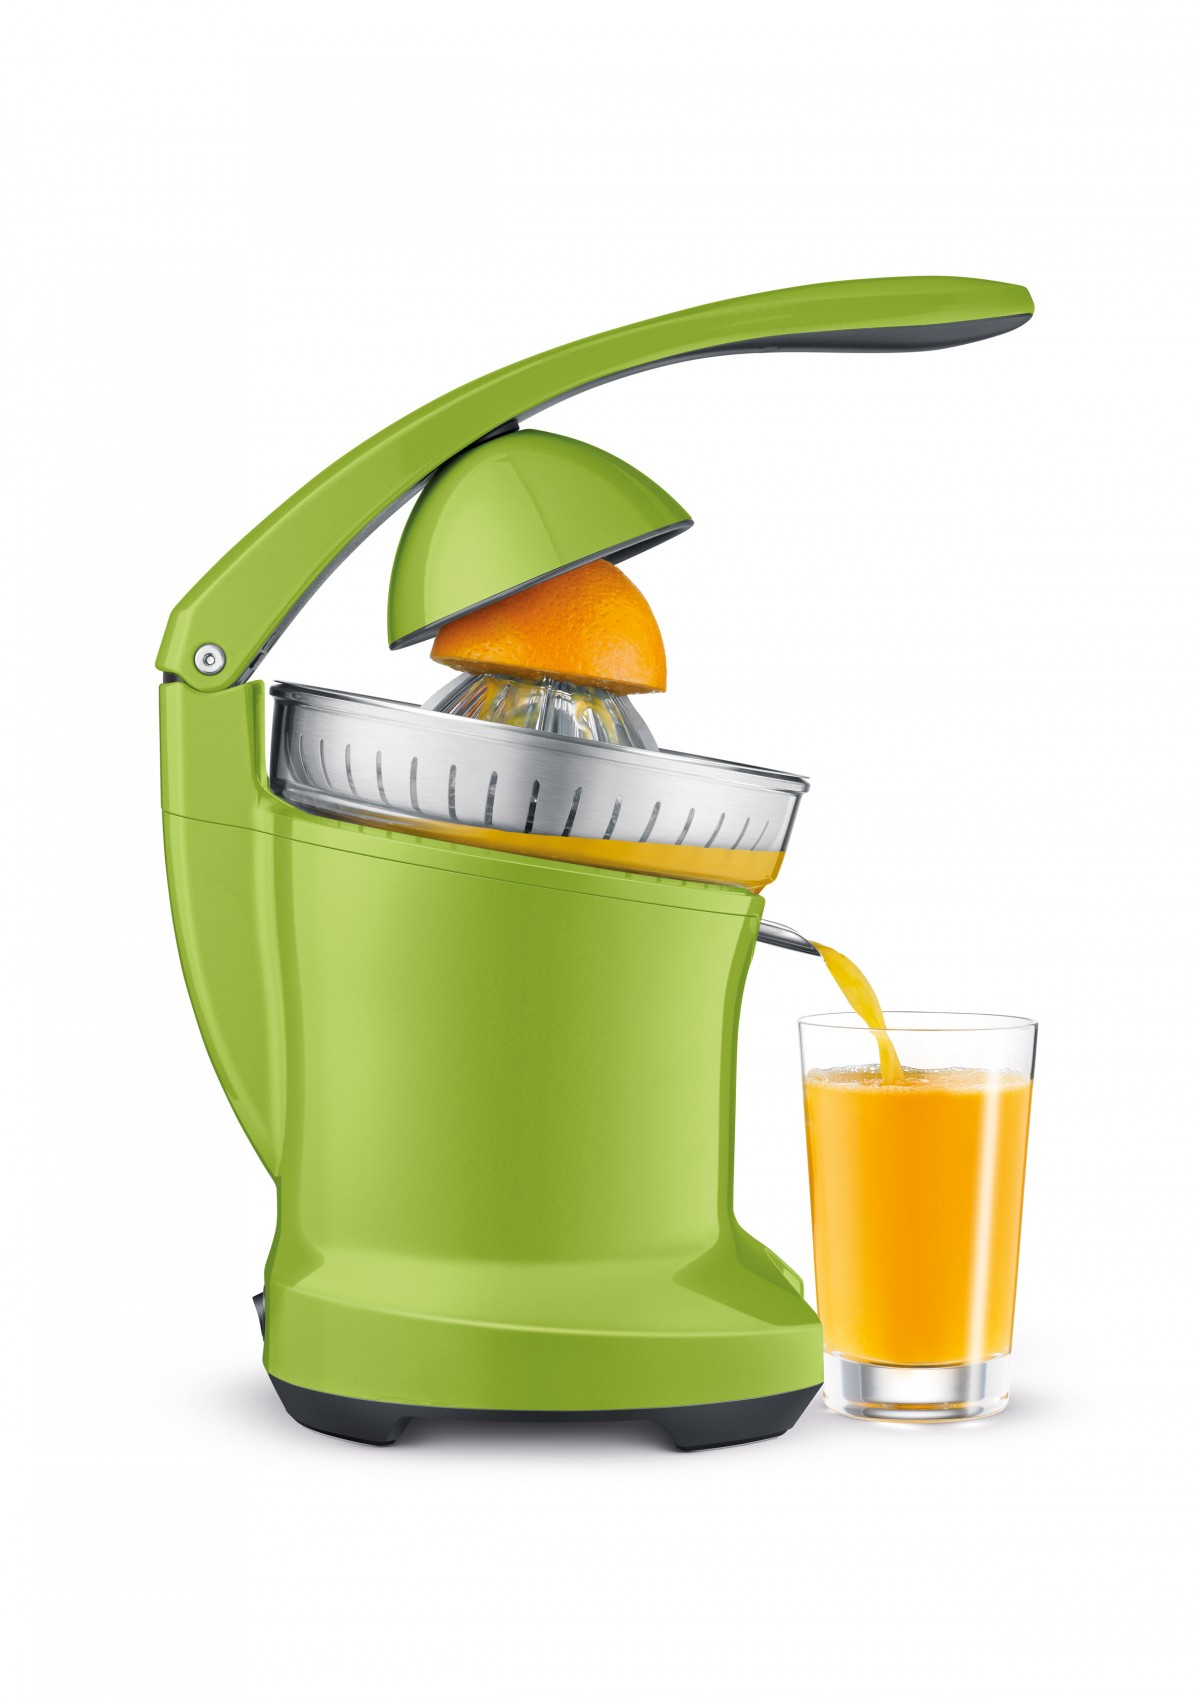 Citrus press clipart #4